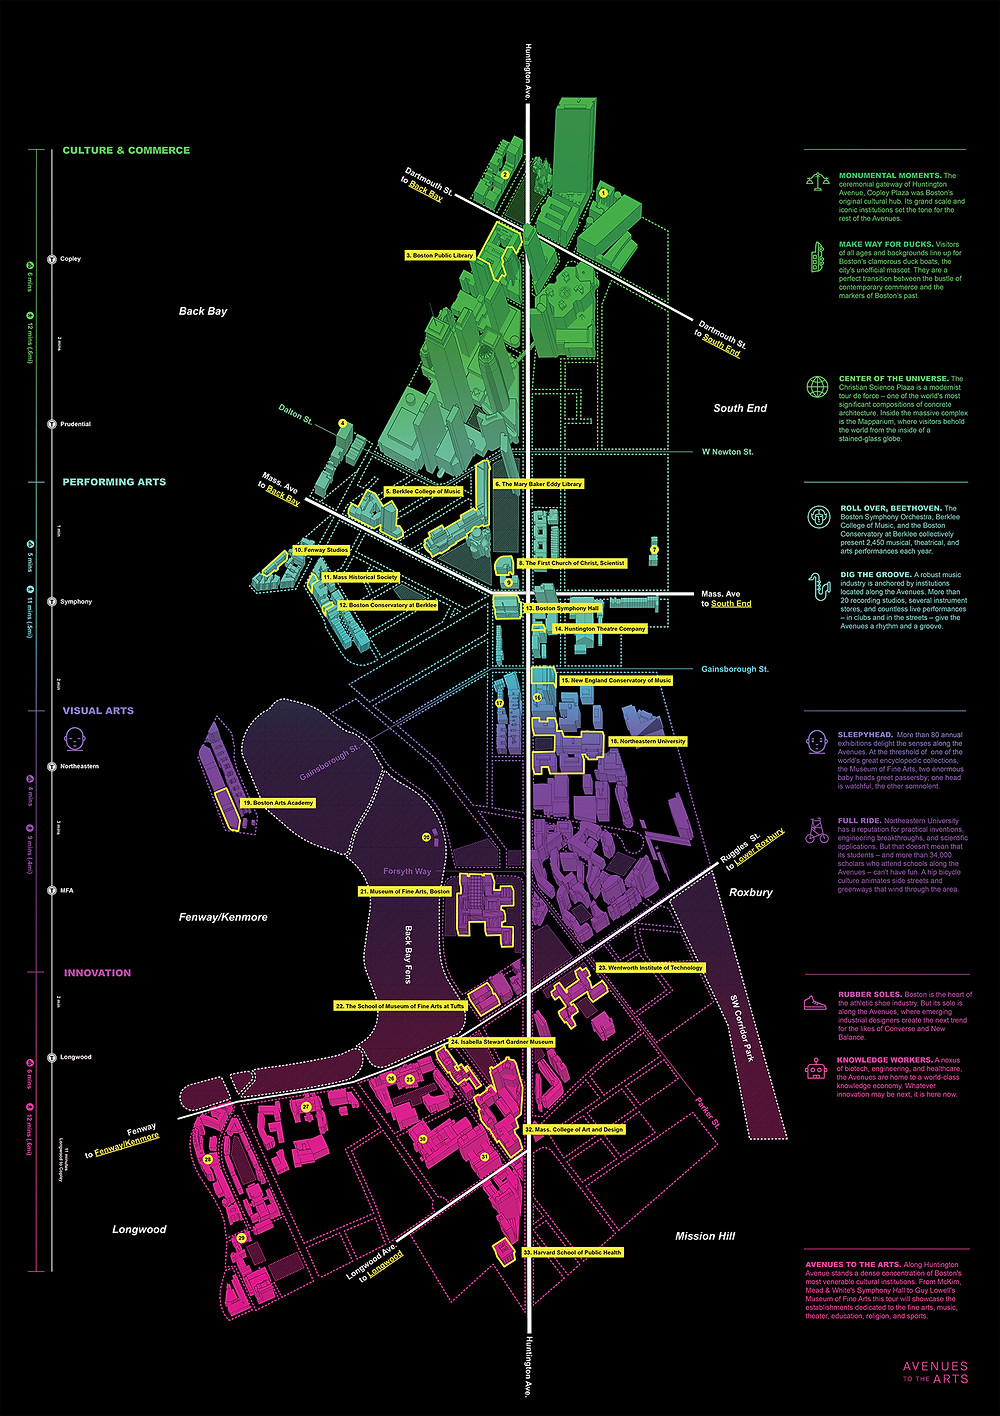 The Avenue of the Arts Map